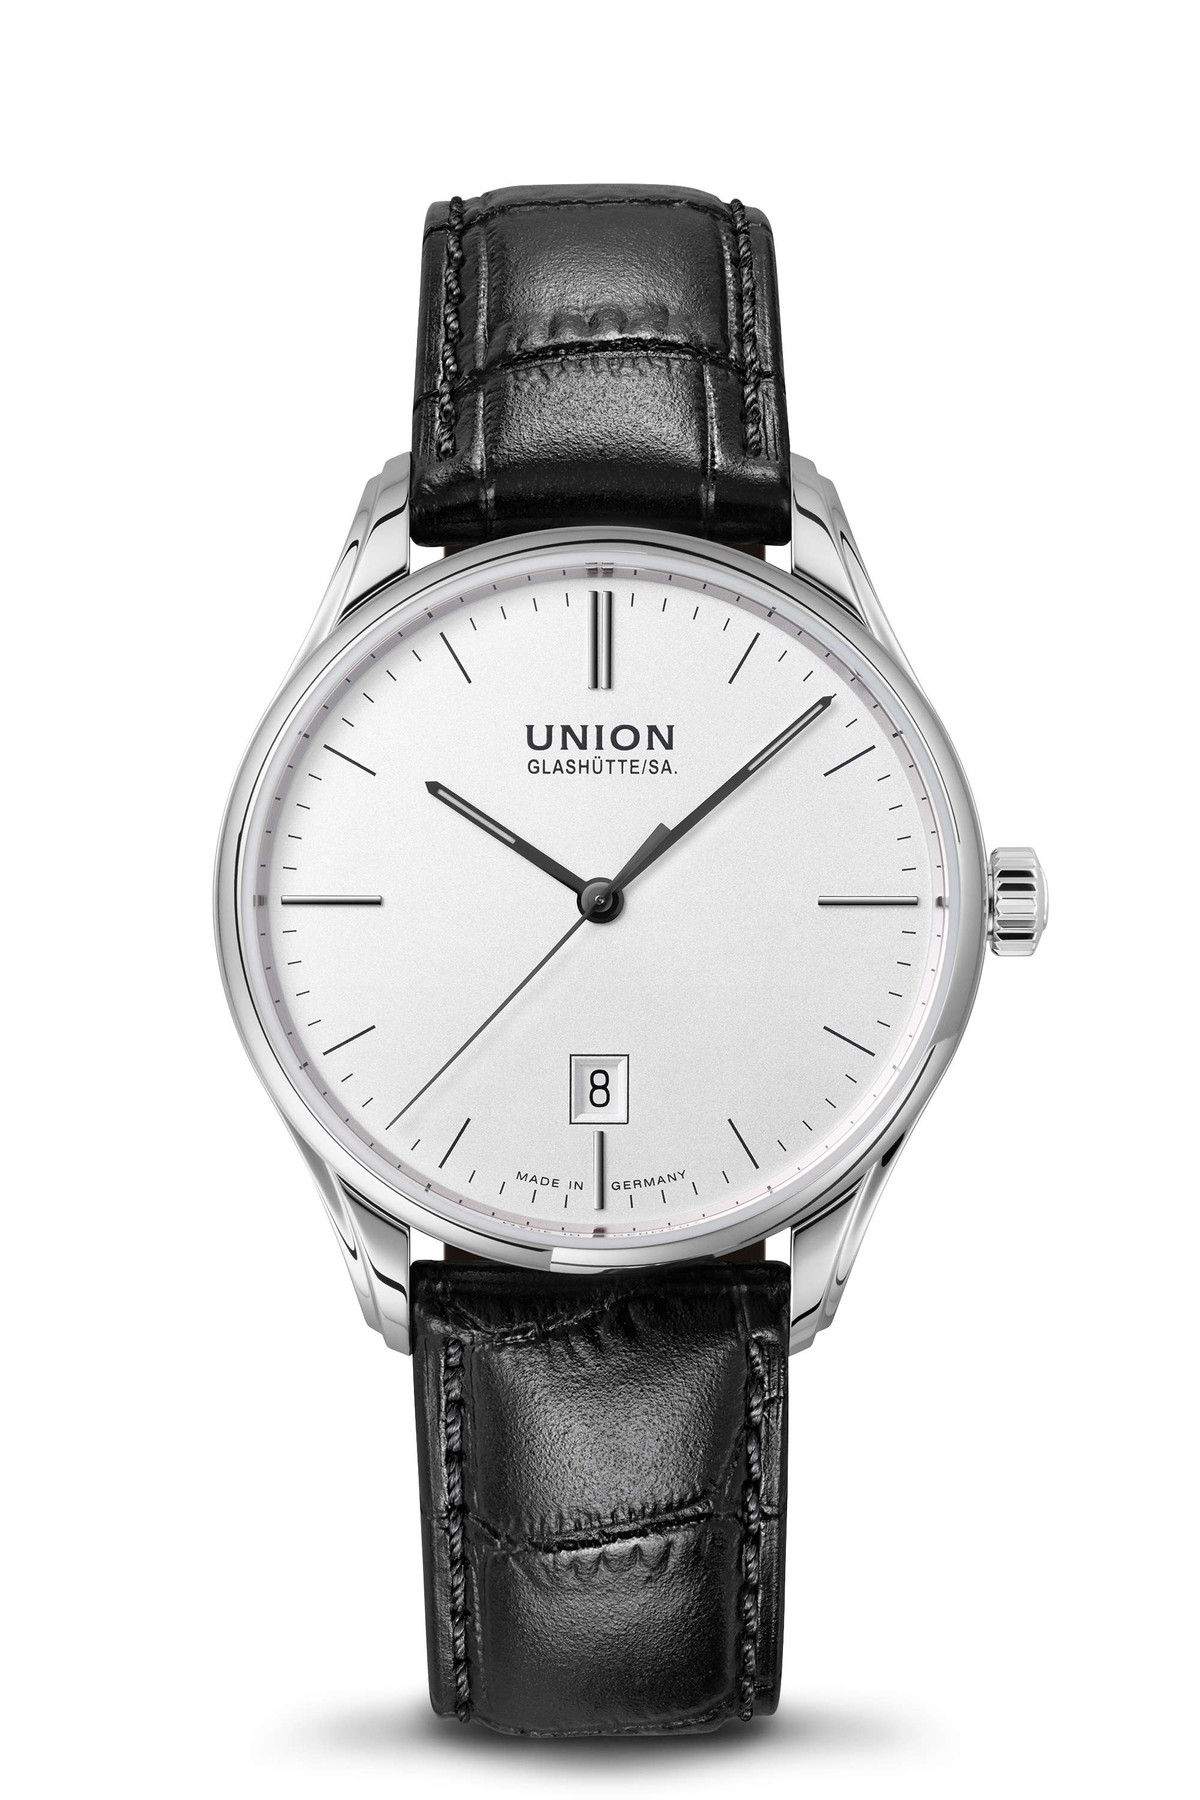 Union Glashütte Viro Datum 41 mm D011.407.16.031.00